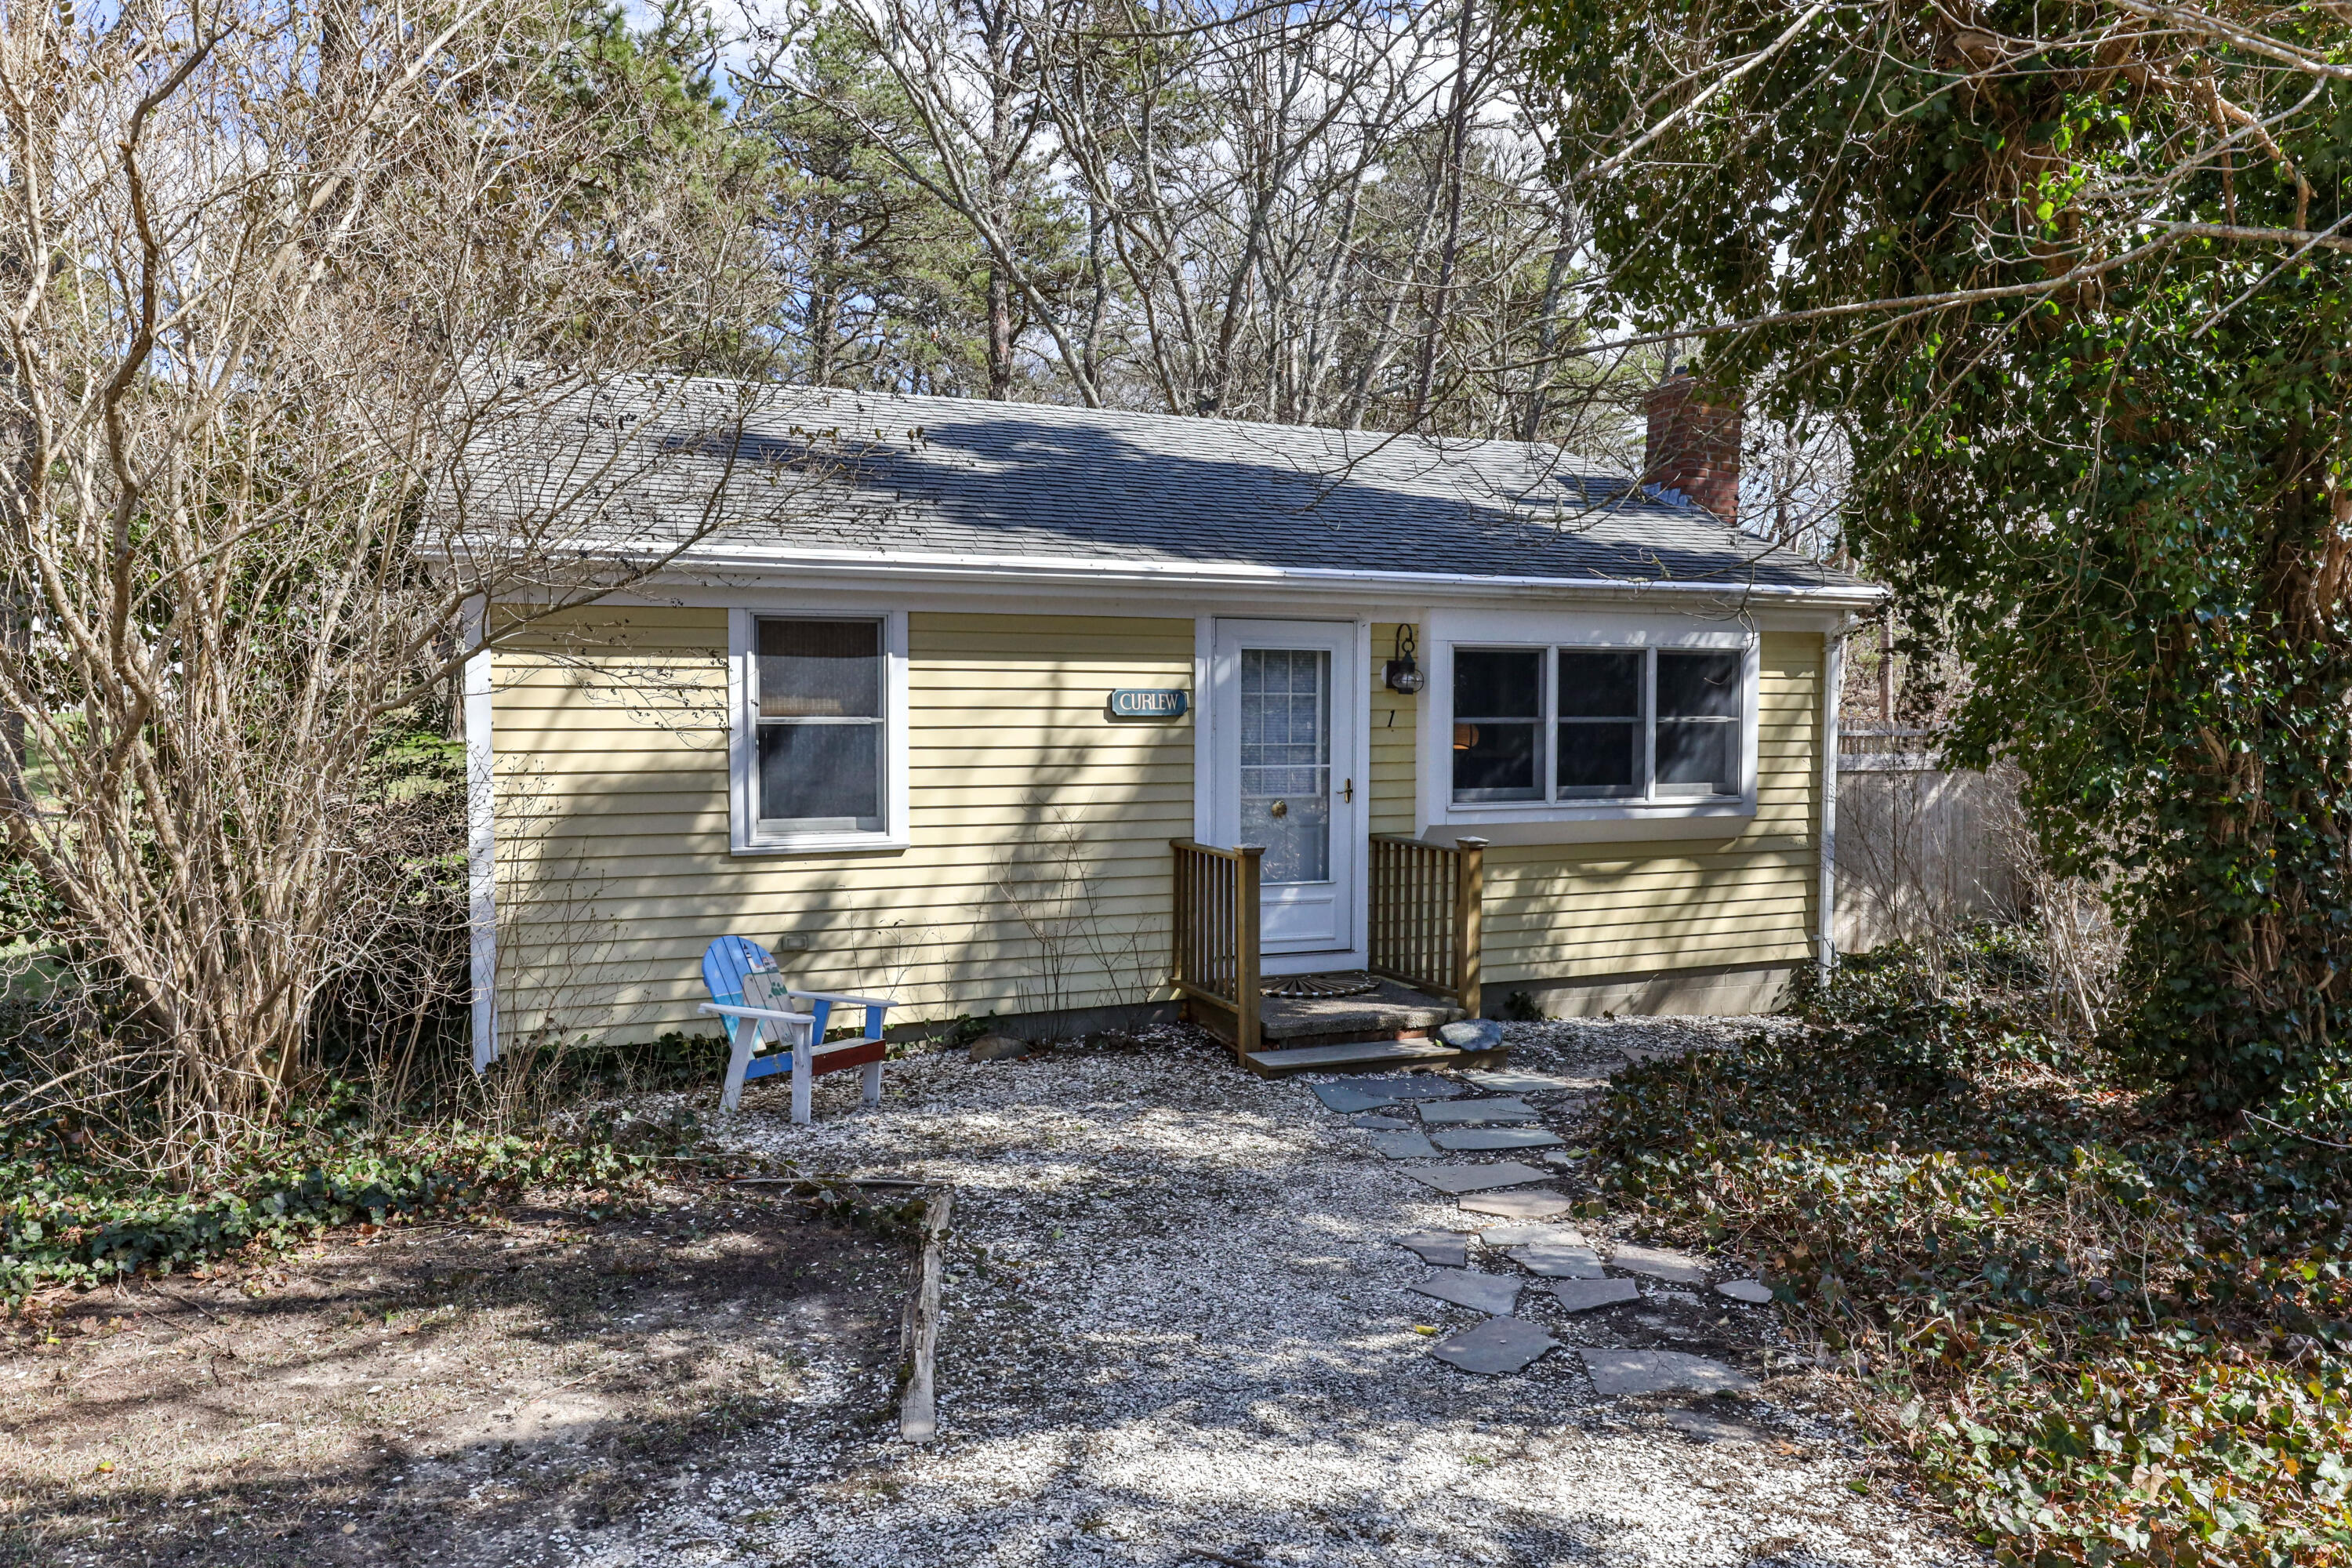 319 S Orleans Road, Orleans MA, 02653 details